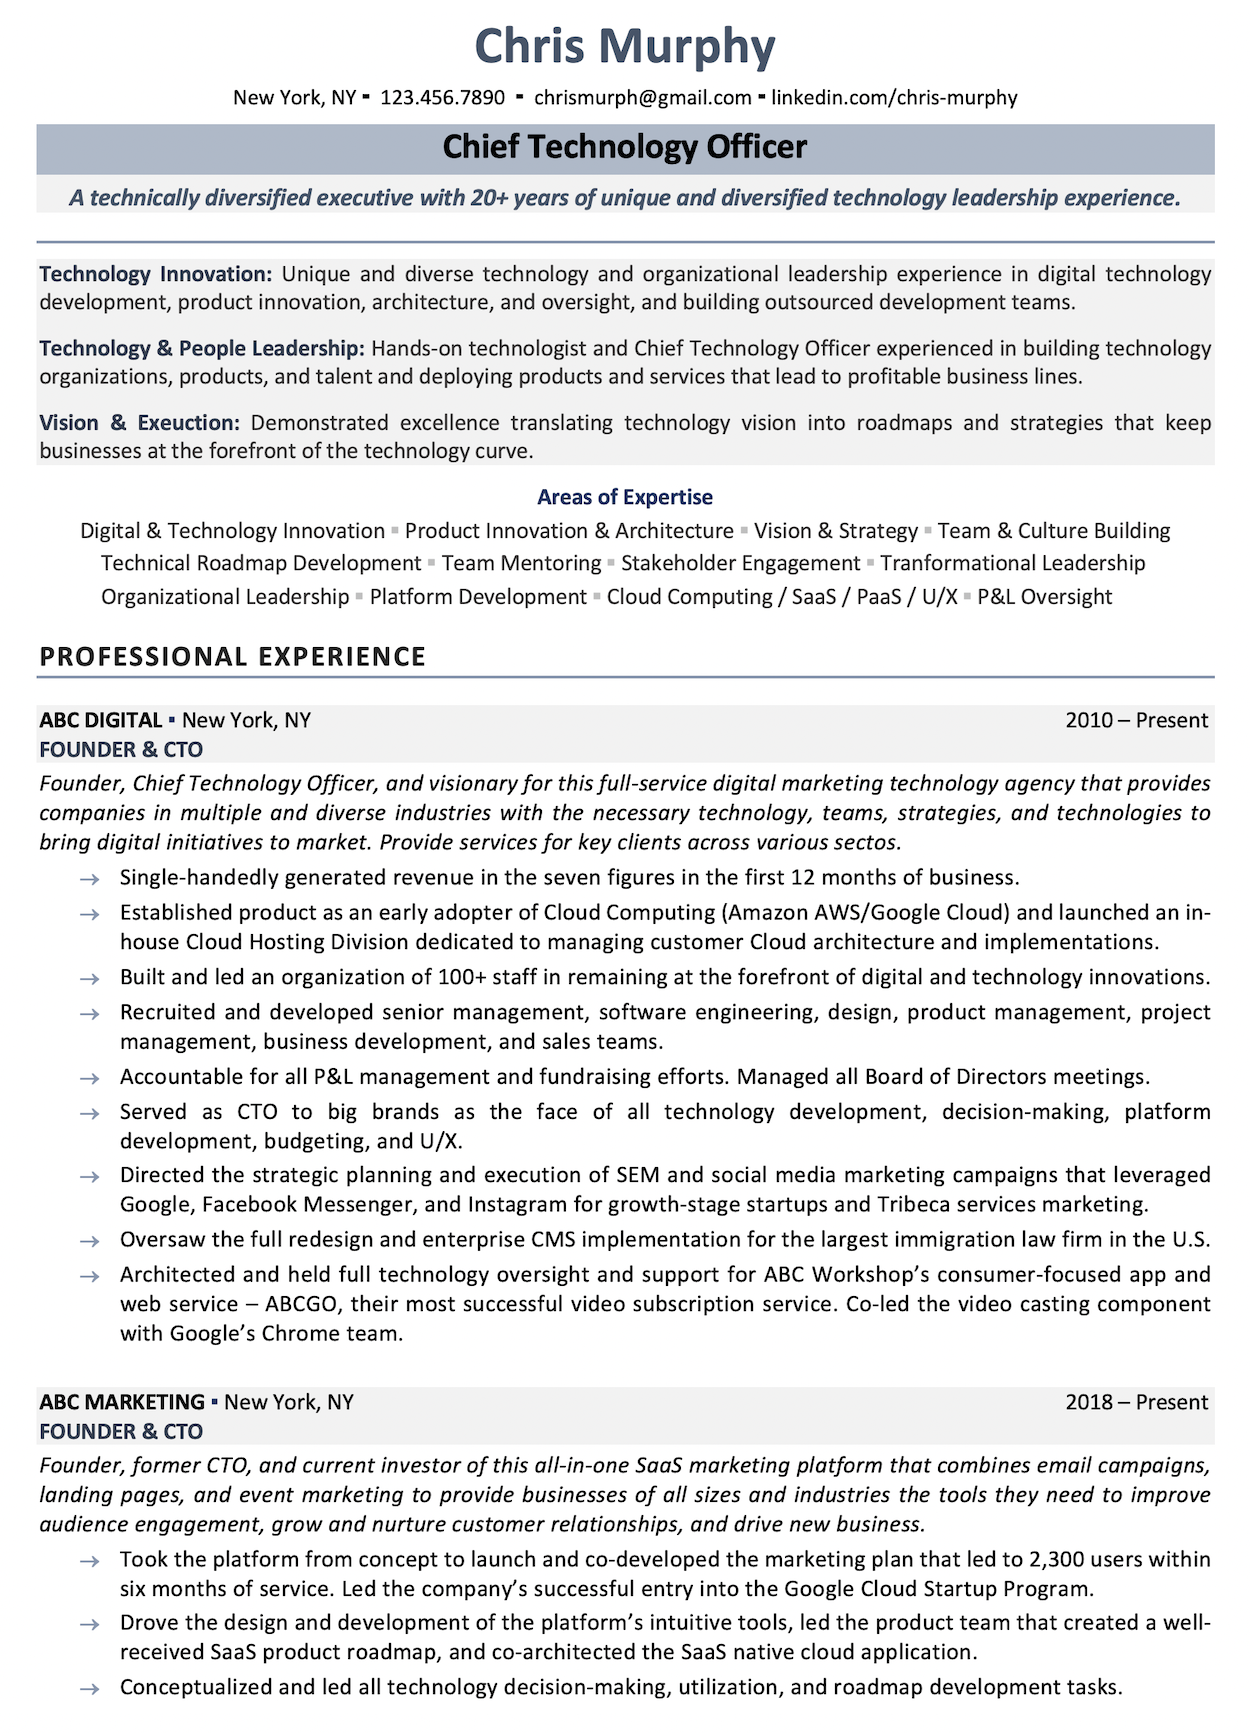 5 Best Chief Technology Officer Resume Services (CTO)